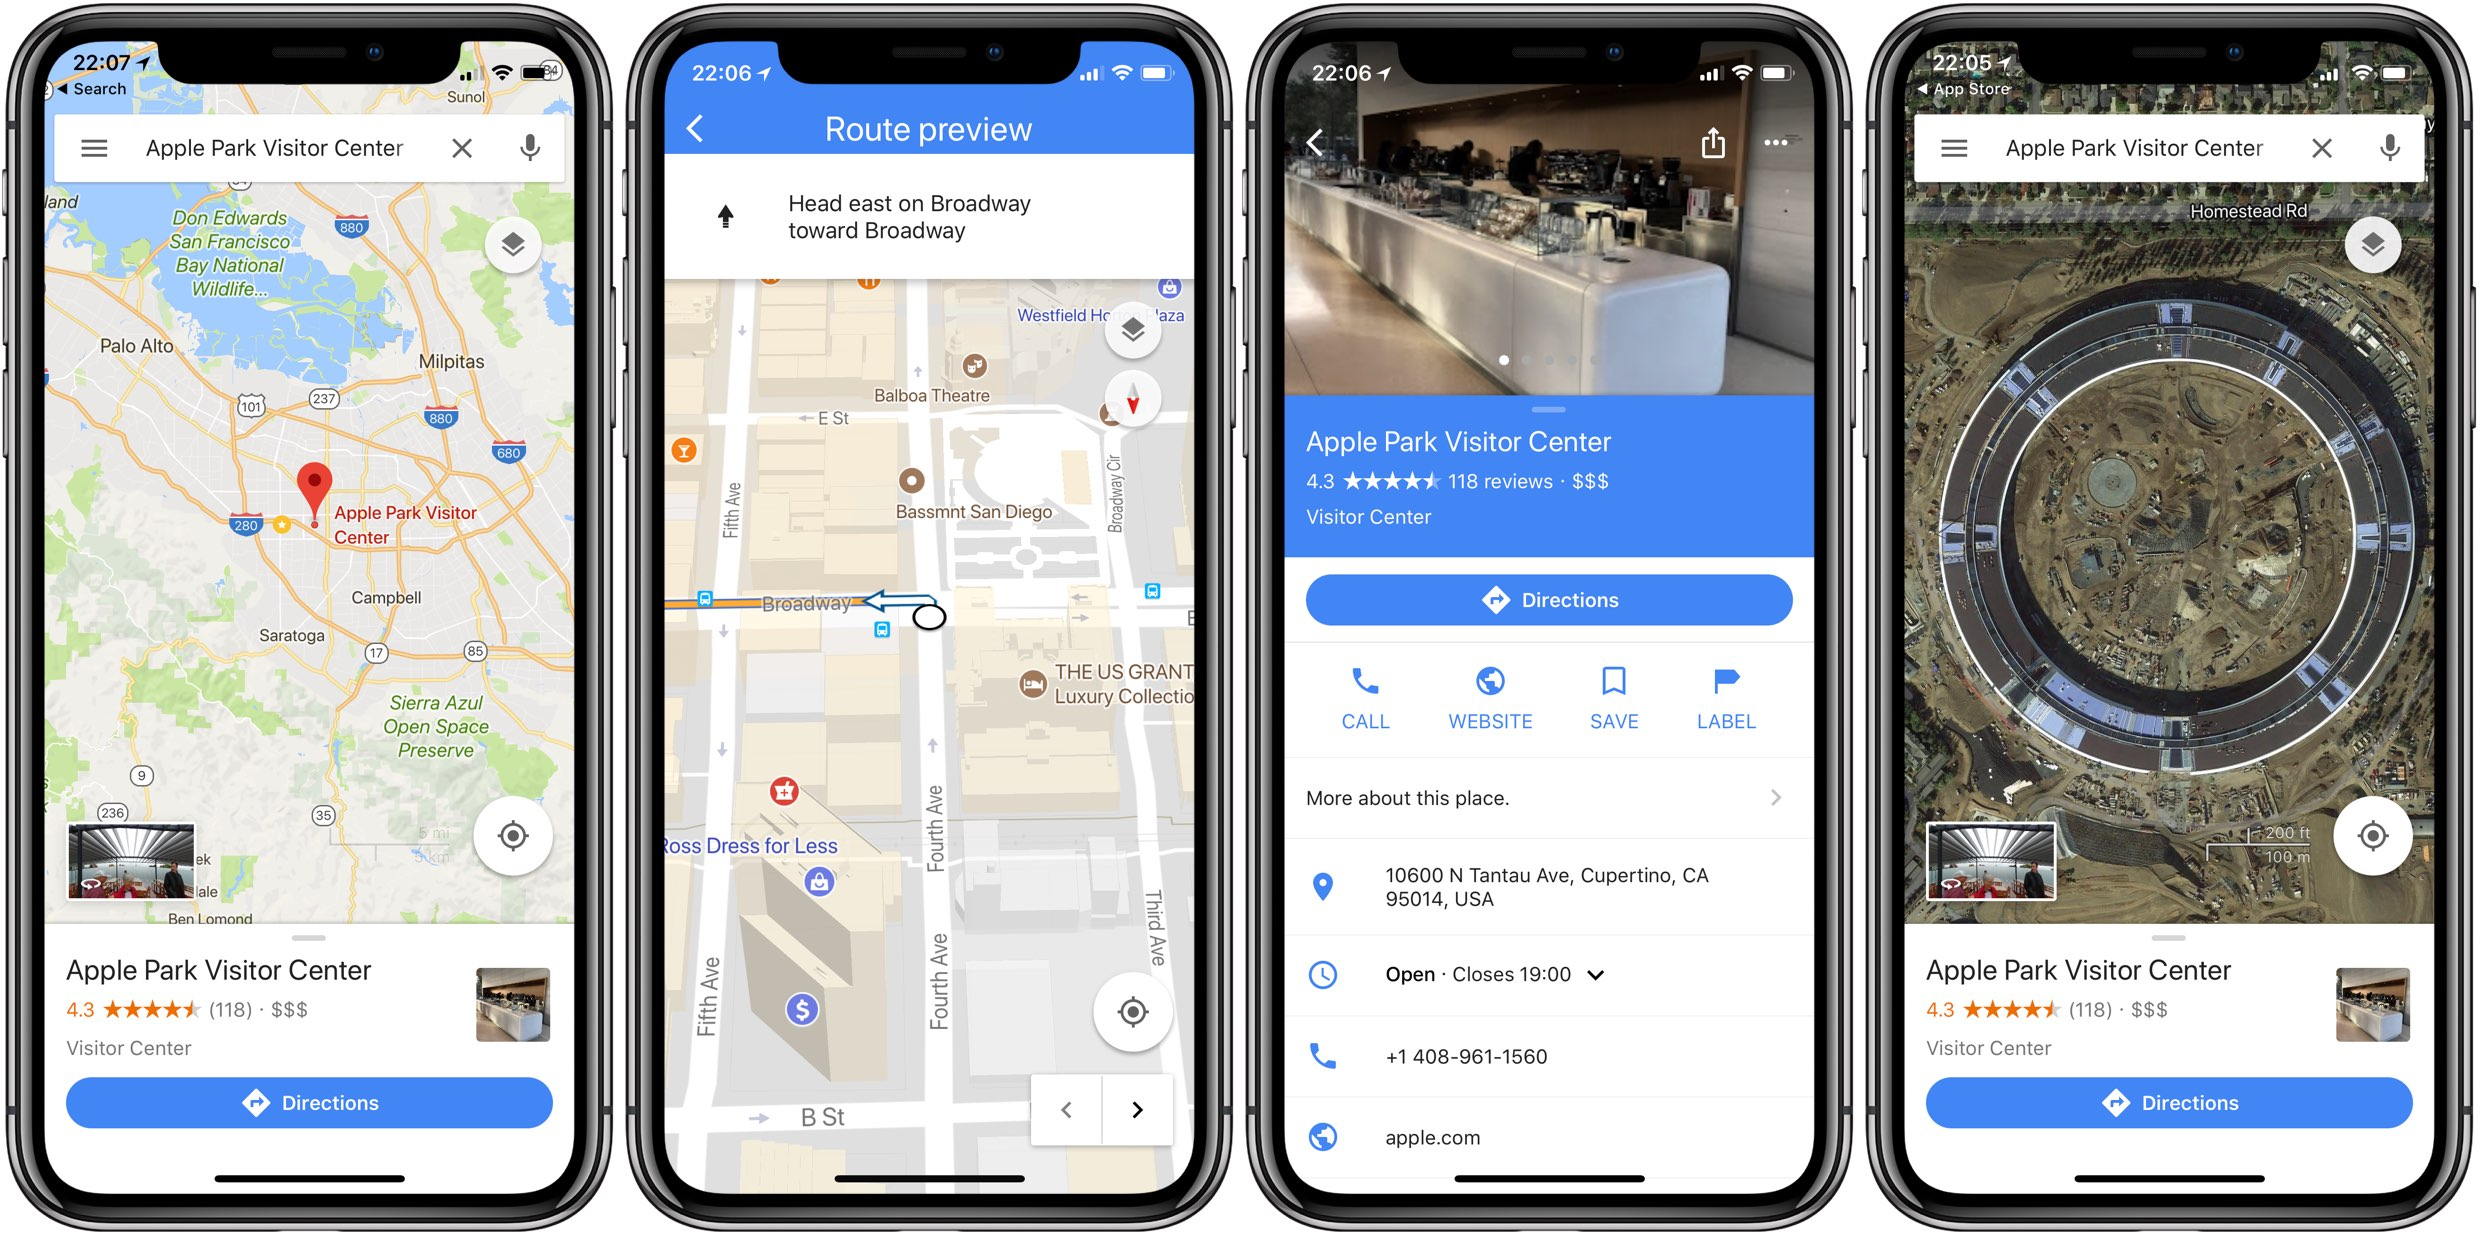 google-maps-iphone-x-support.jpg